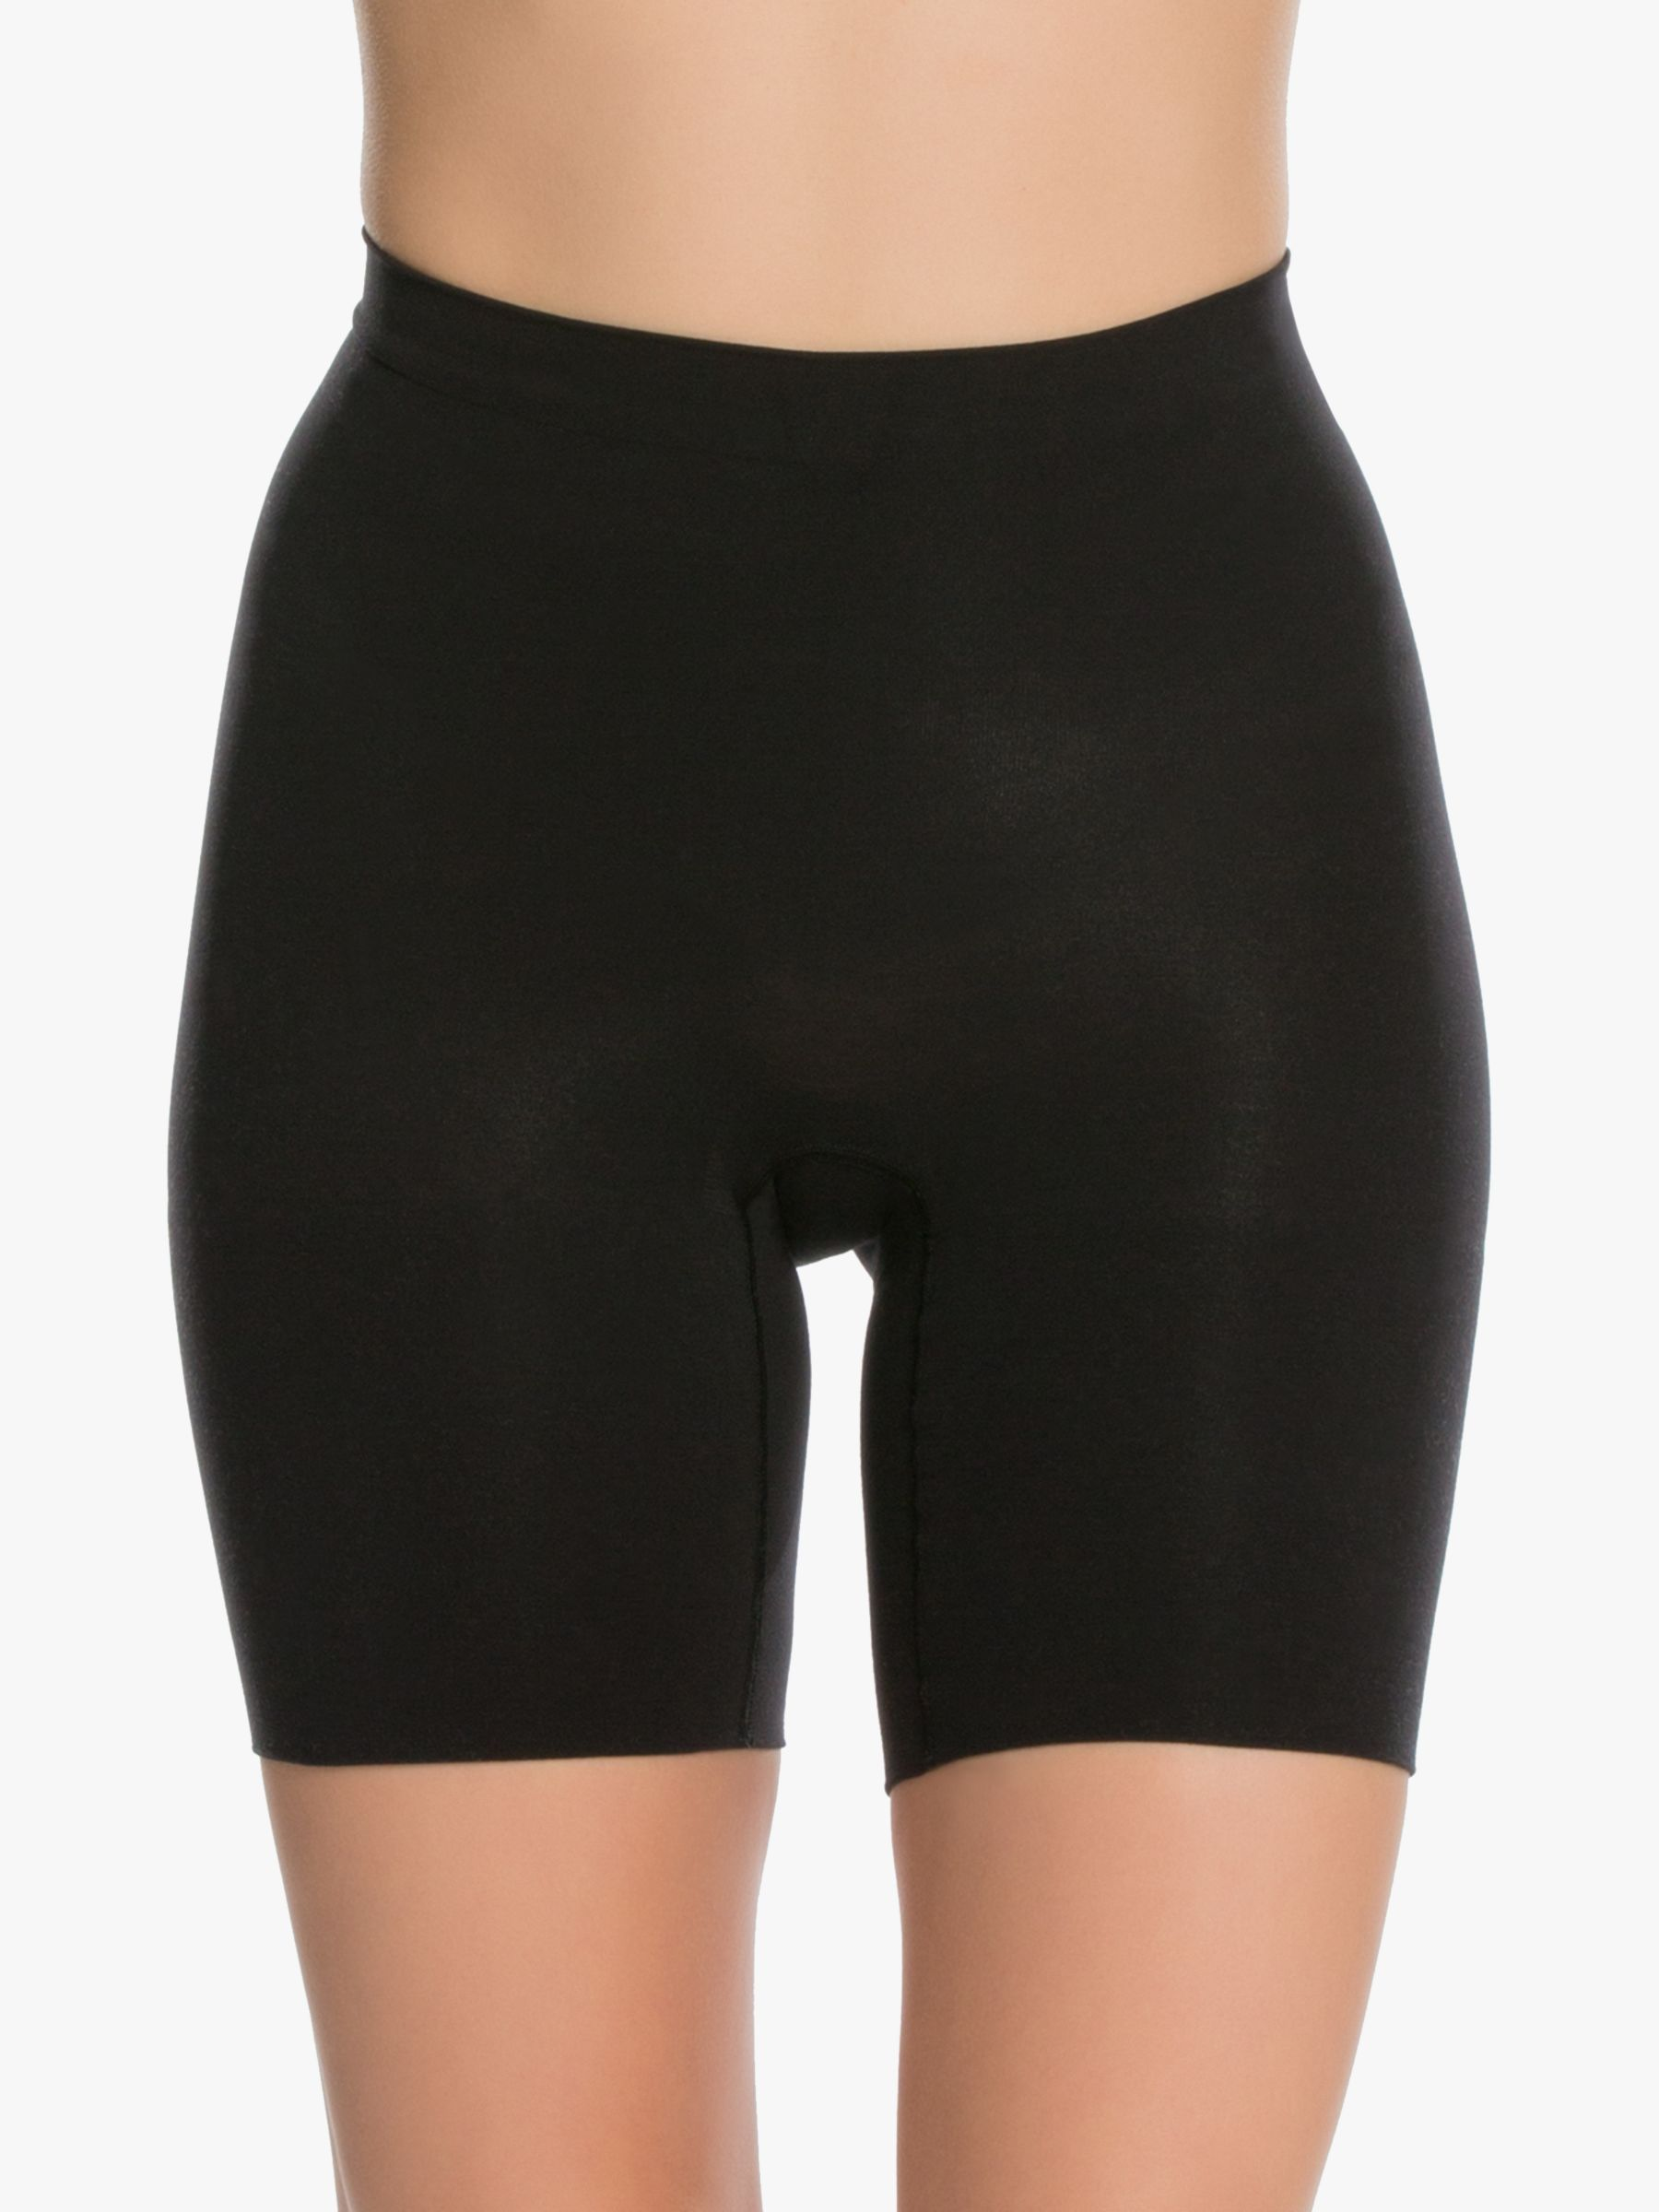 Spanx Spanx NEW Power Shorts